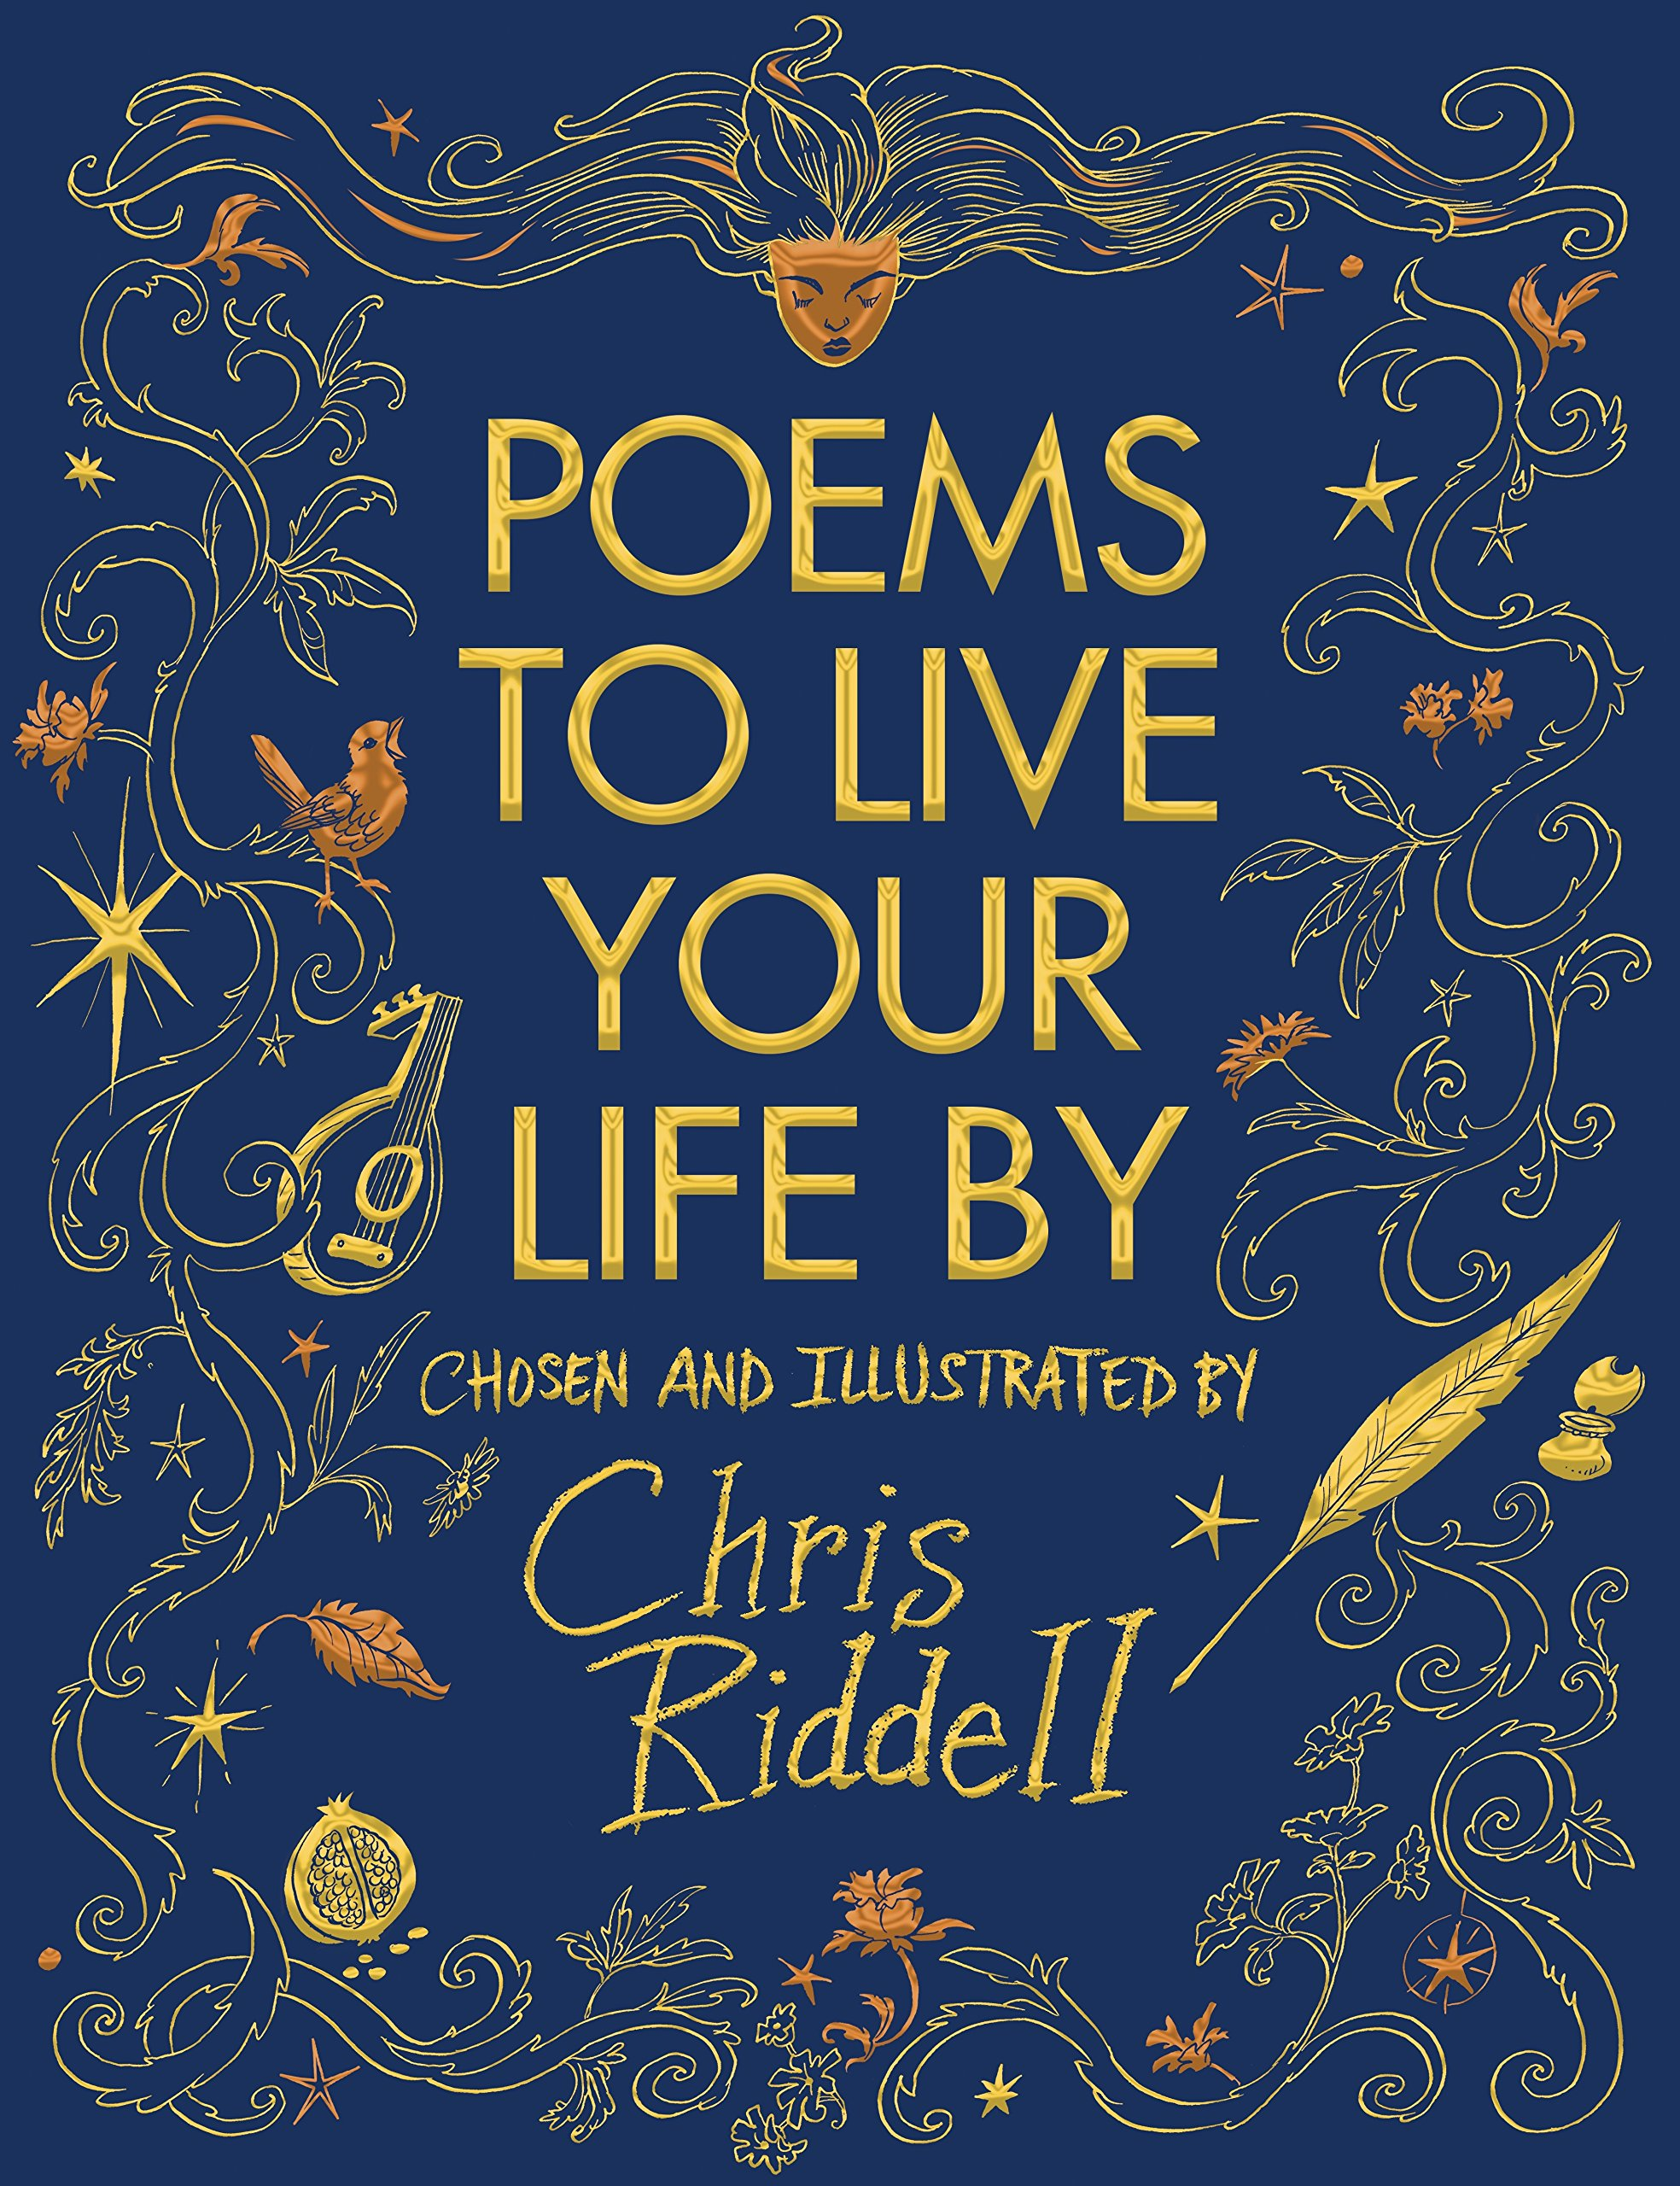 Jacket image for Chris Riddell's anthology of poetry 'Poems to Live Your Life By'